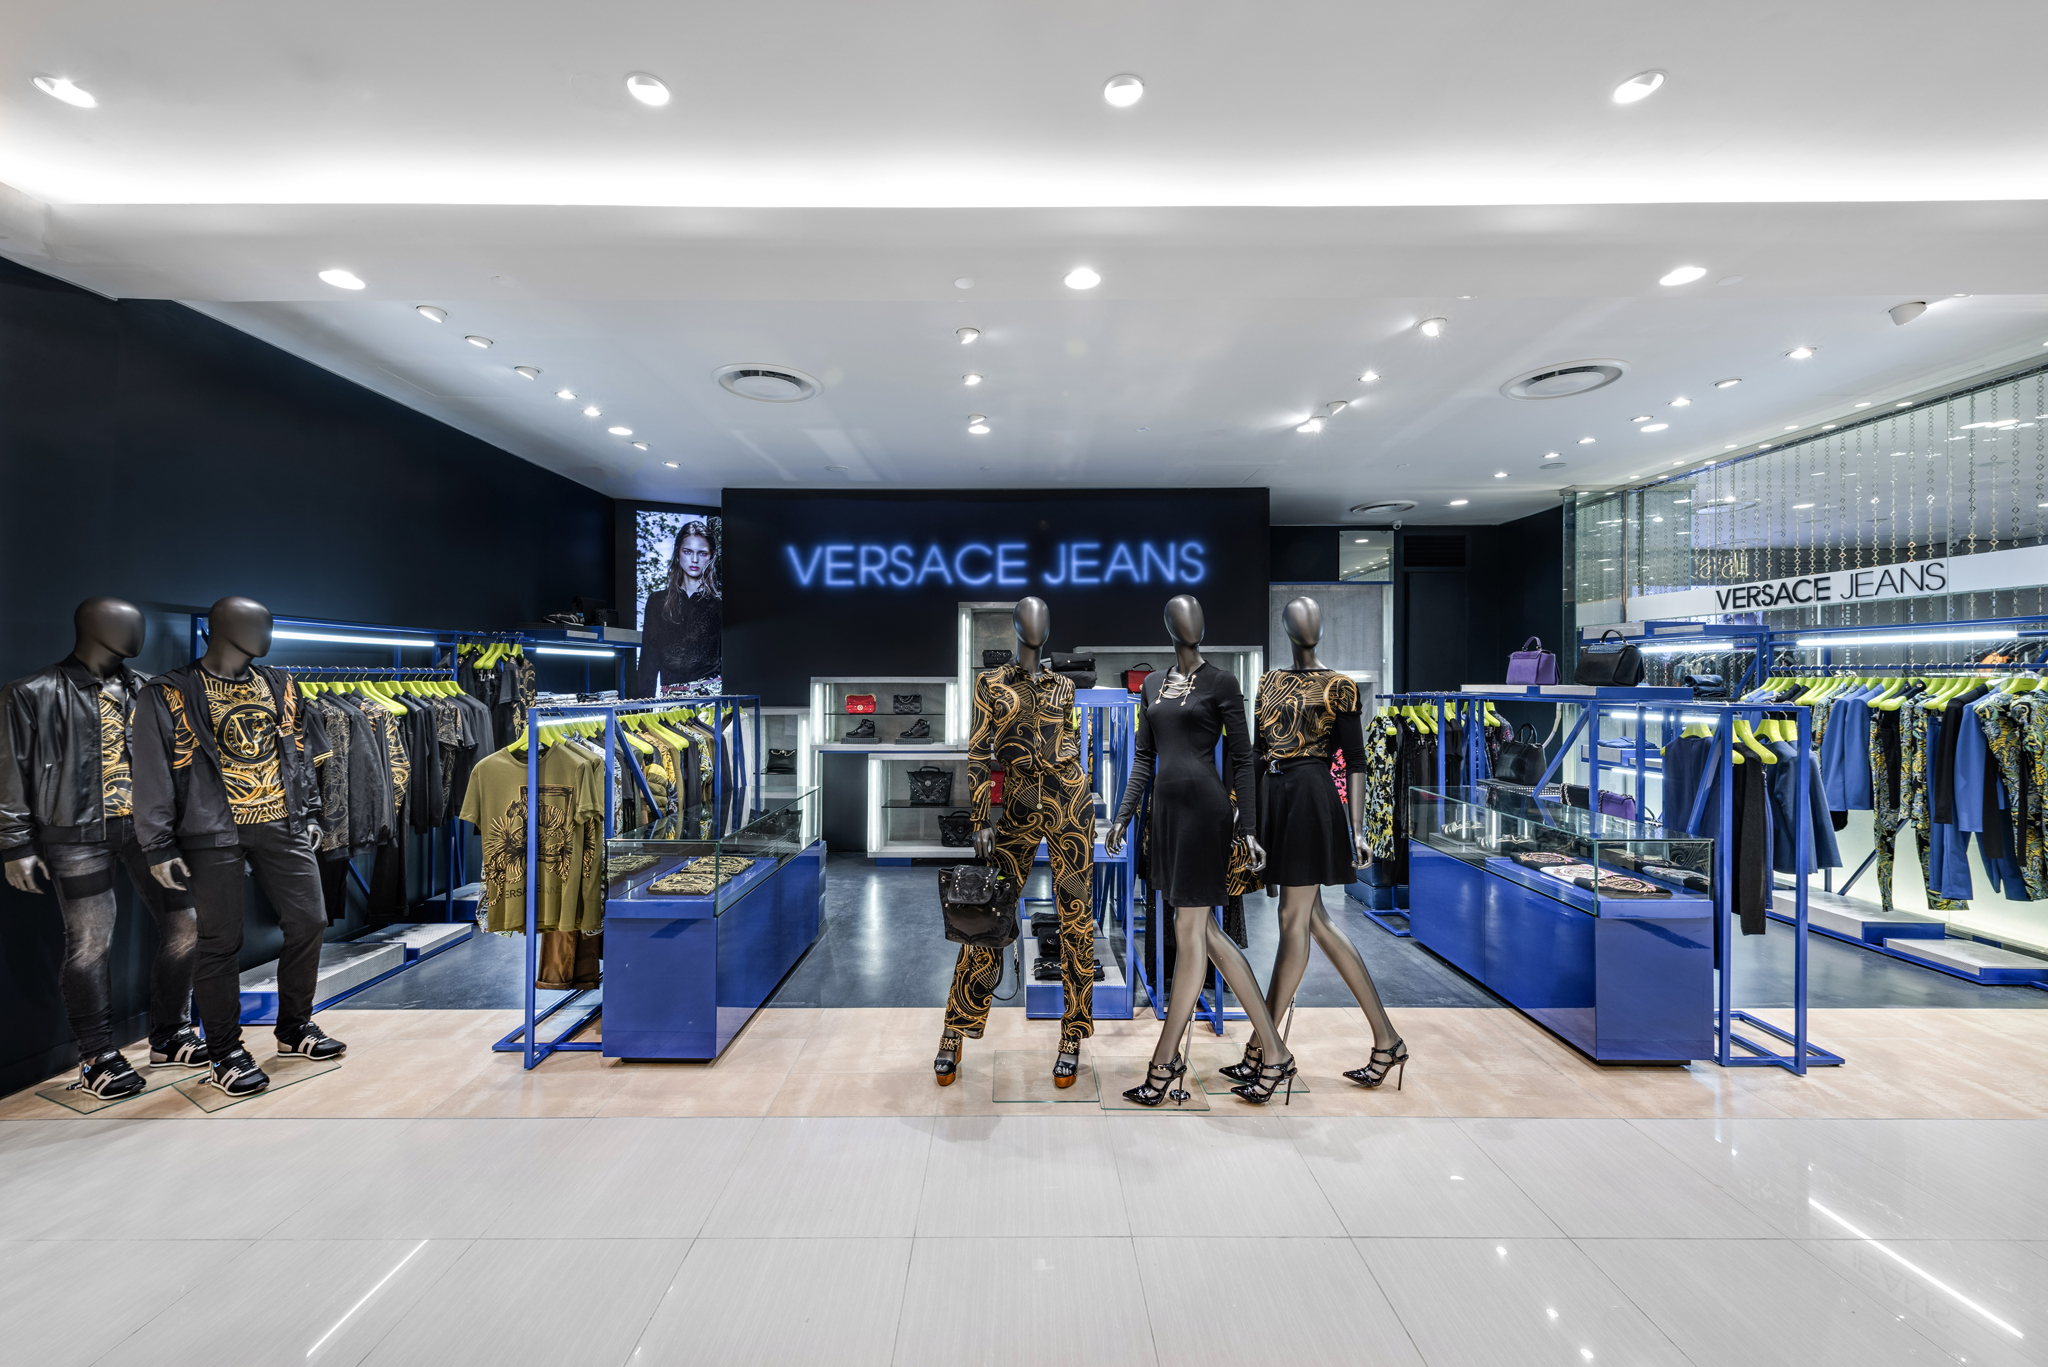 20160729 - Versace Jean - HCM - Commercial - Interior - Store - Retouch 0001.jpg